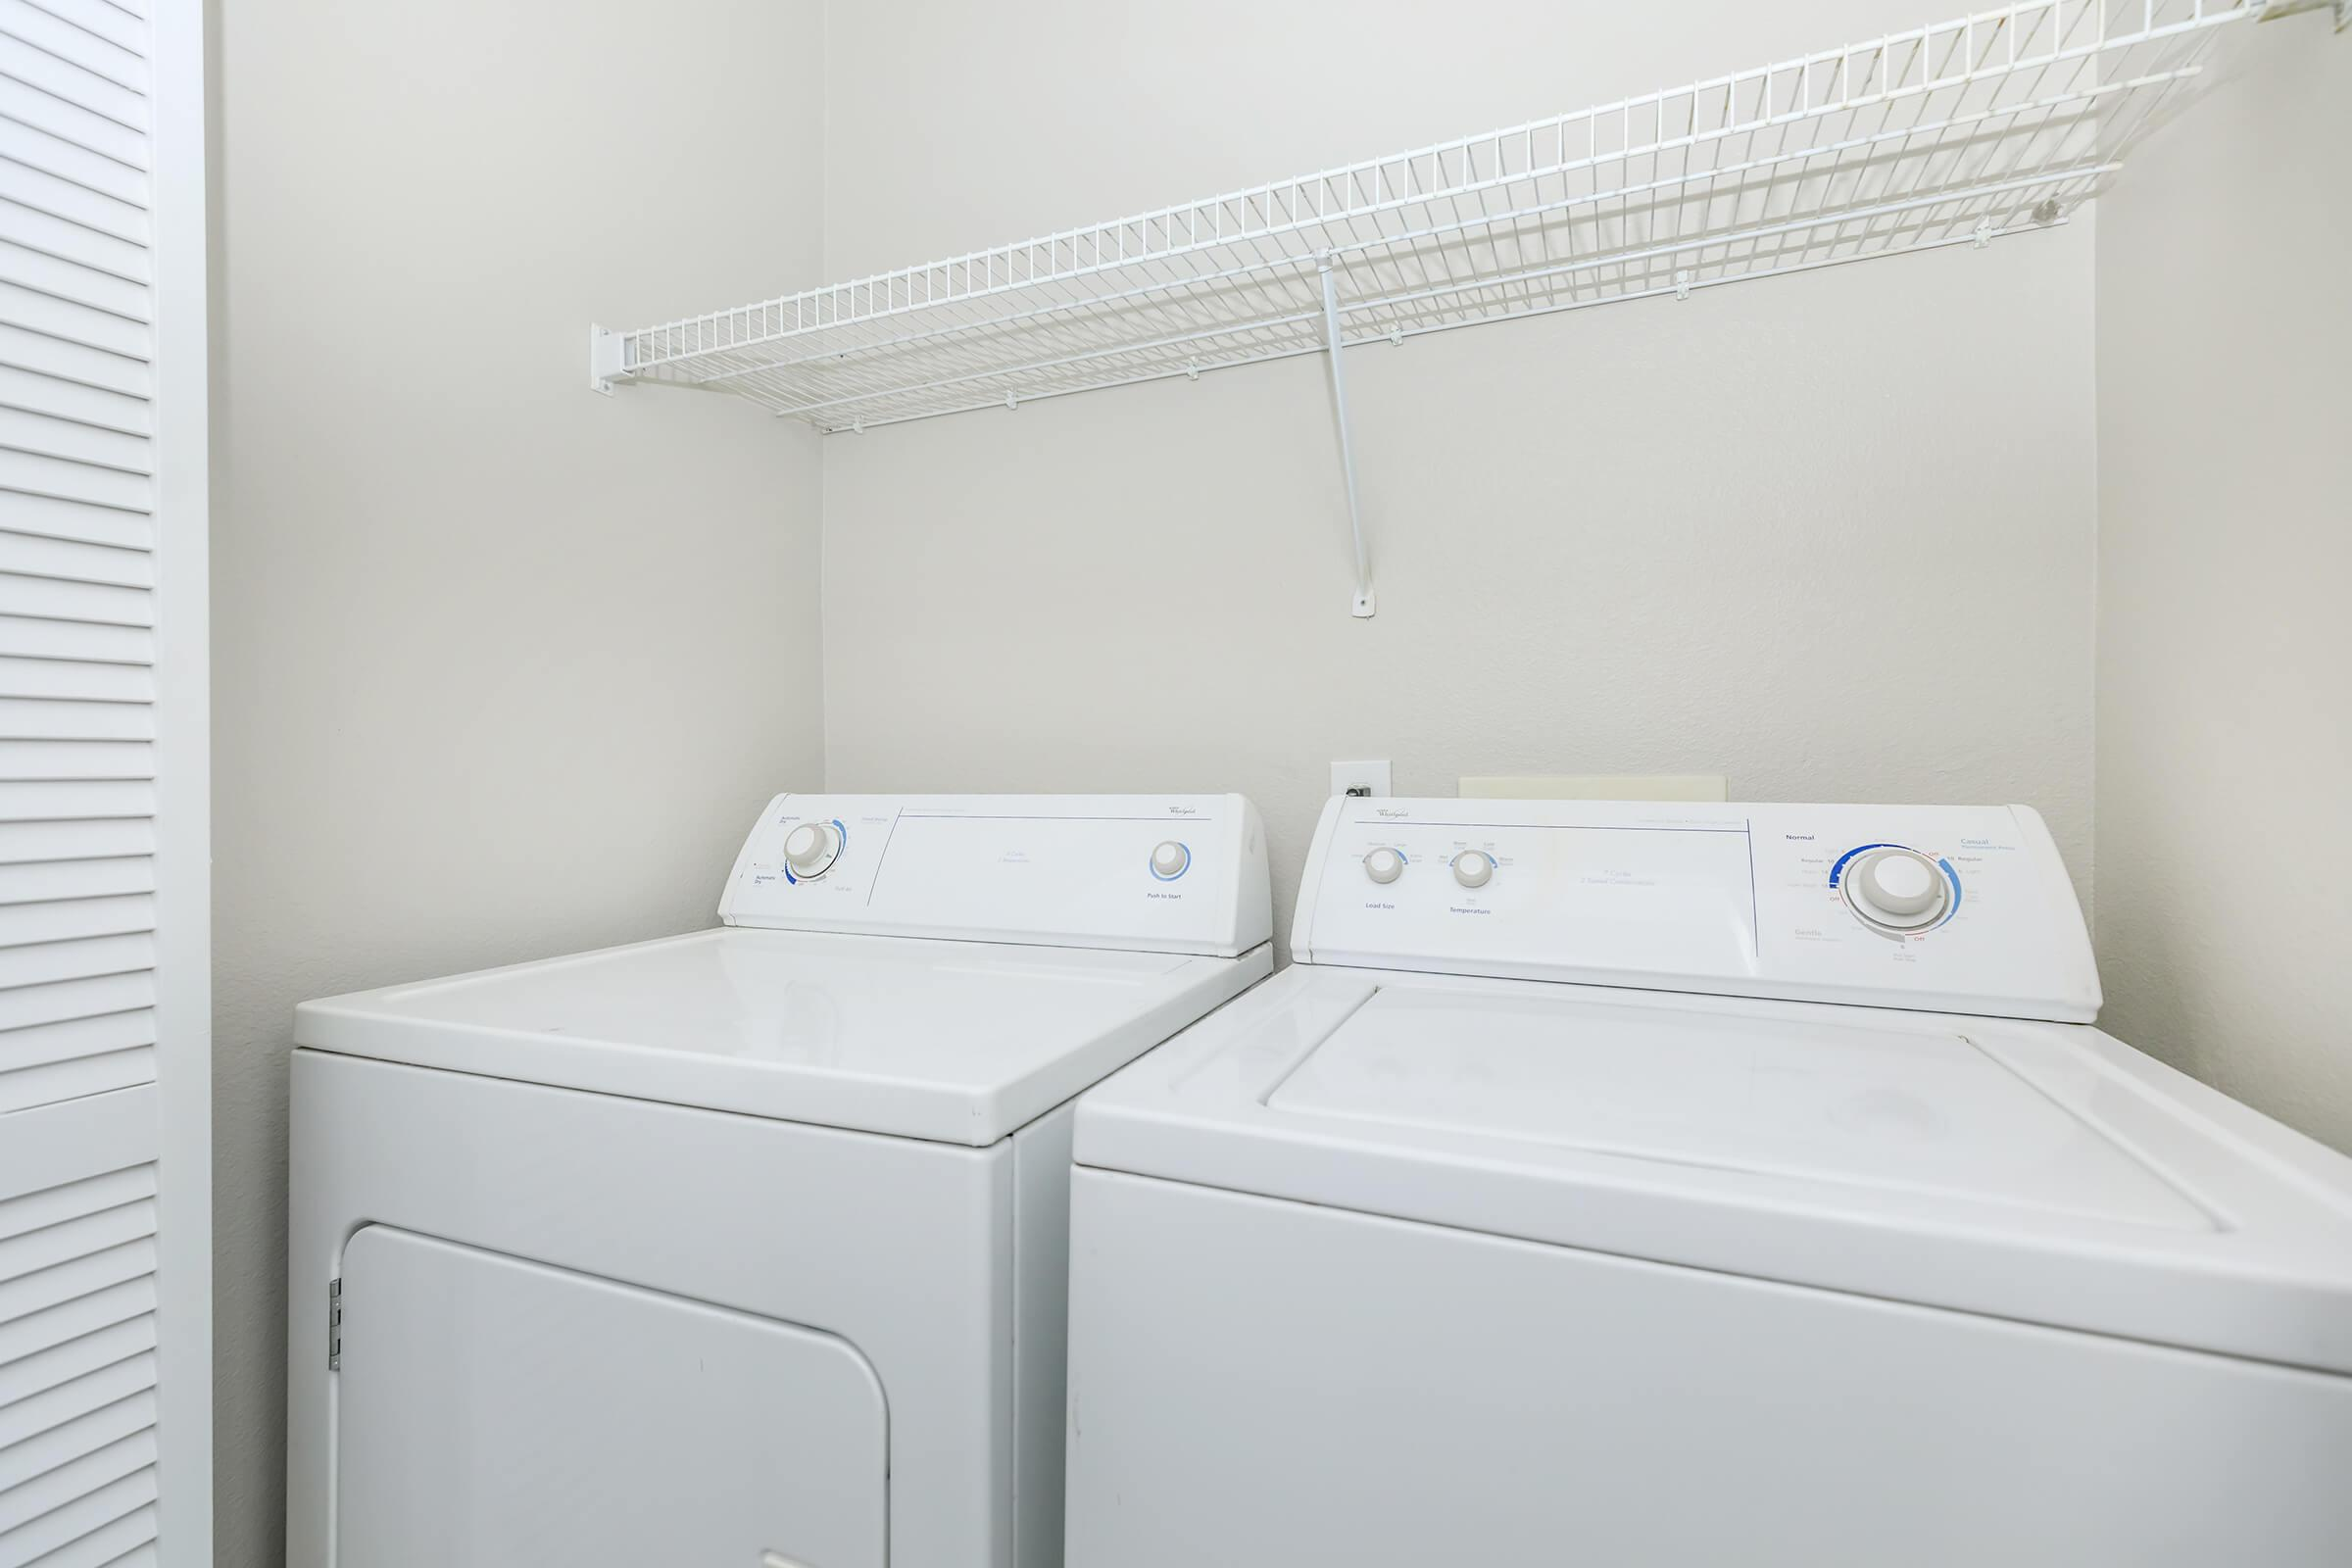 Vacant washer and dryer in laundry closet